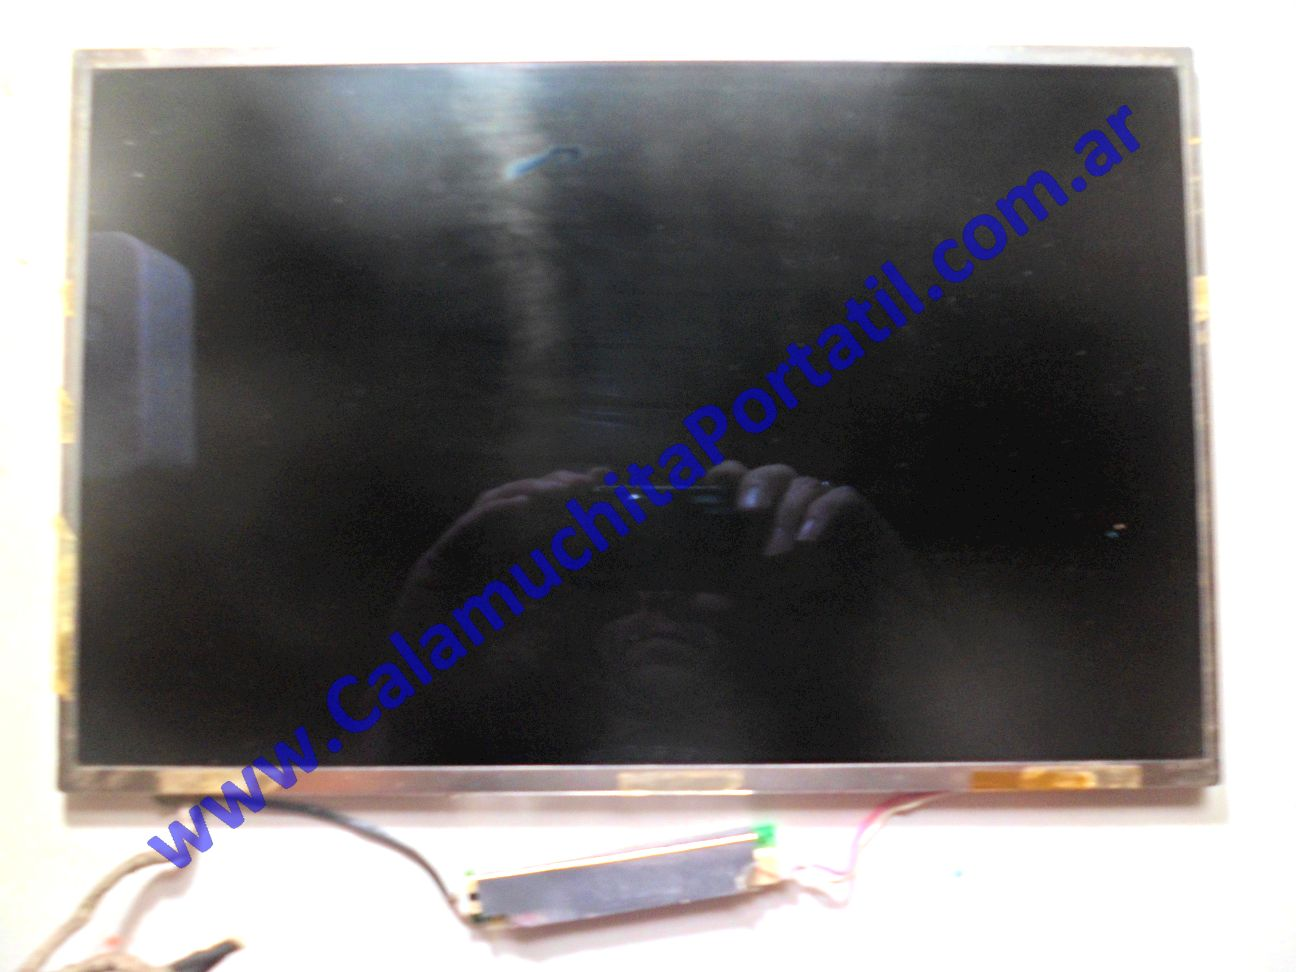 0037DIA Display MSI VR330X / MS-1336